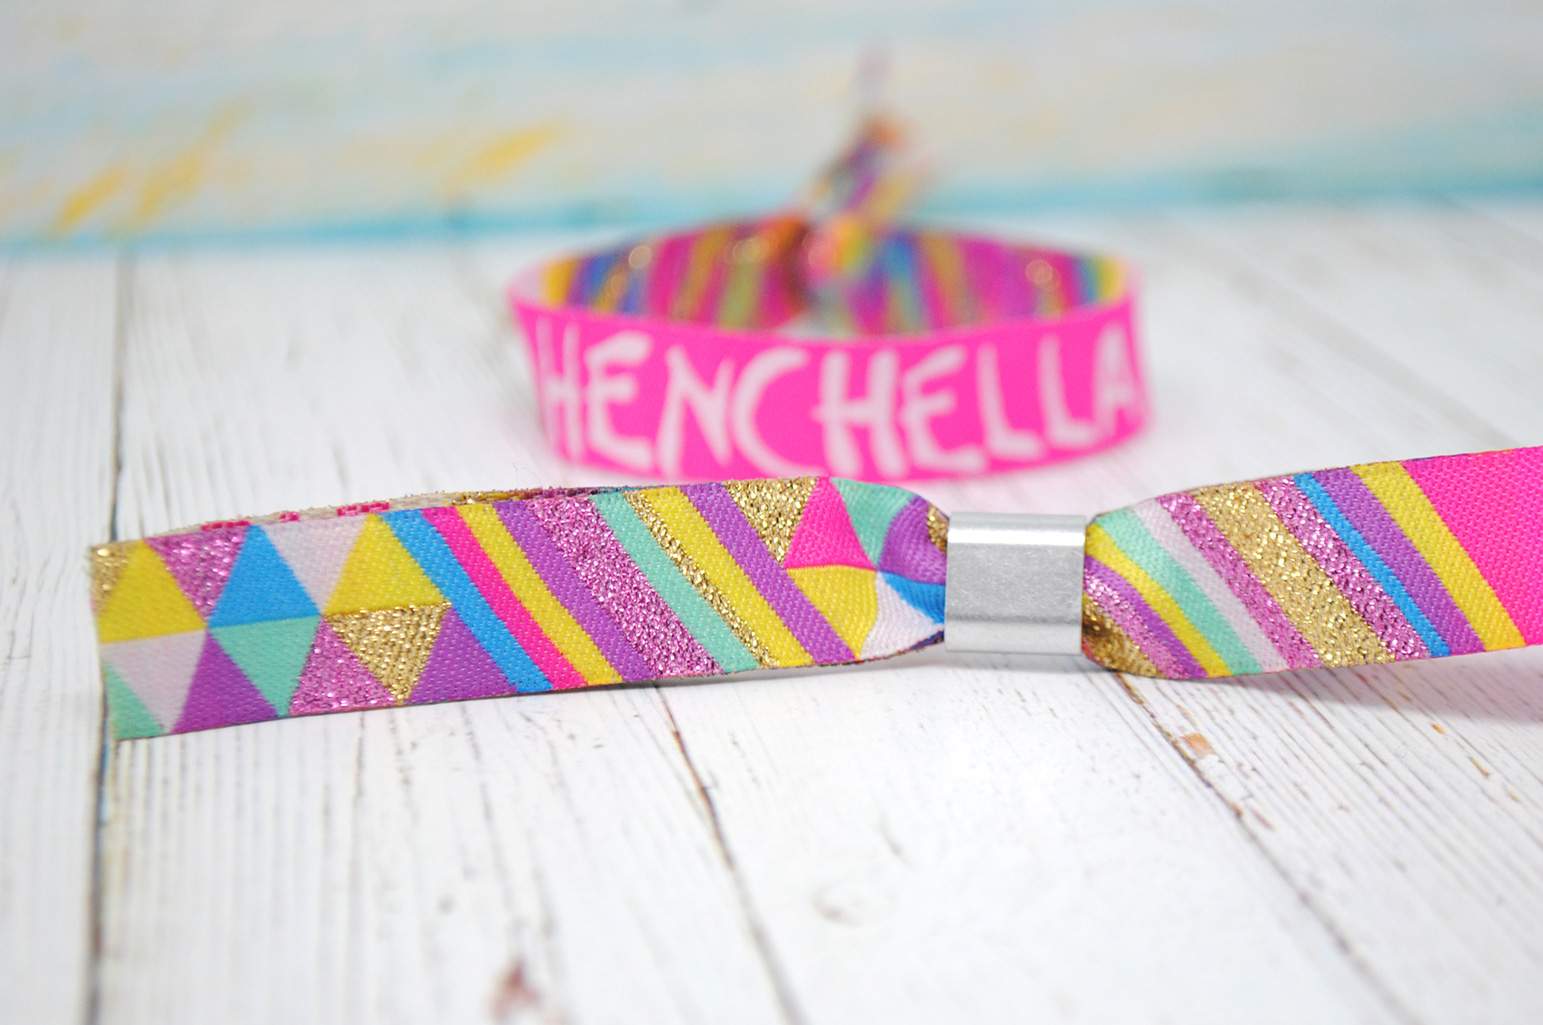 henchella hen wristbands favours